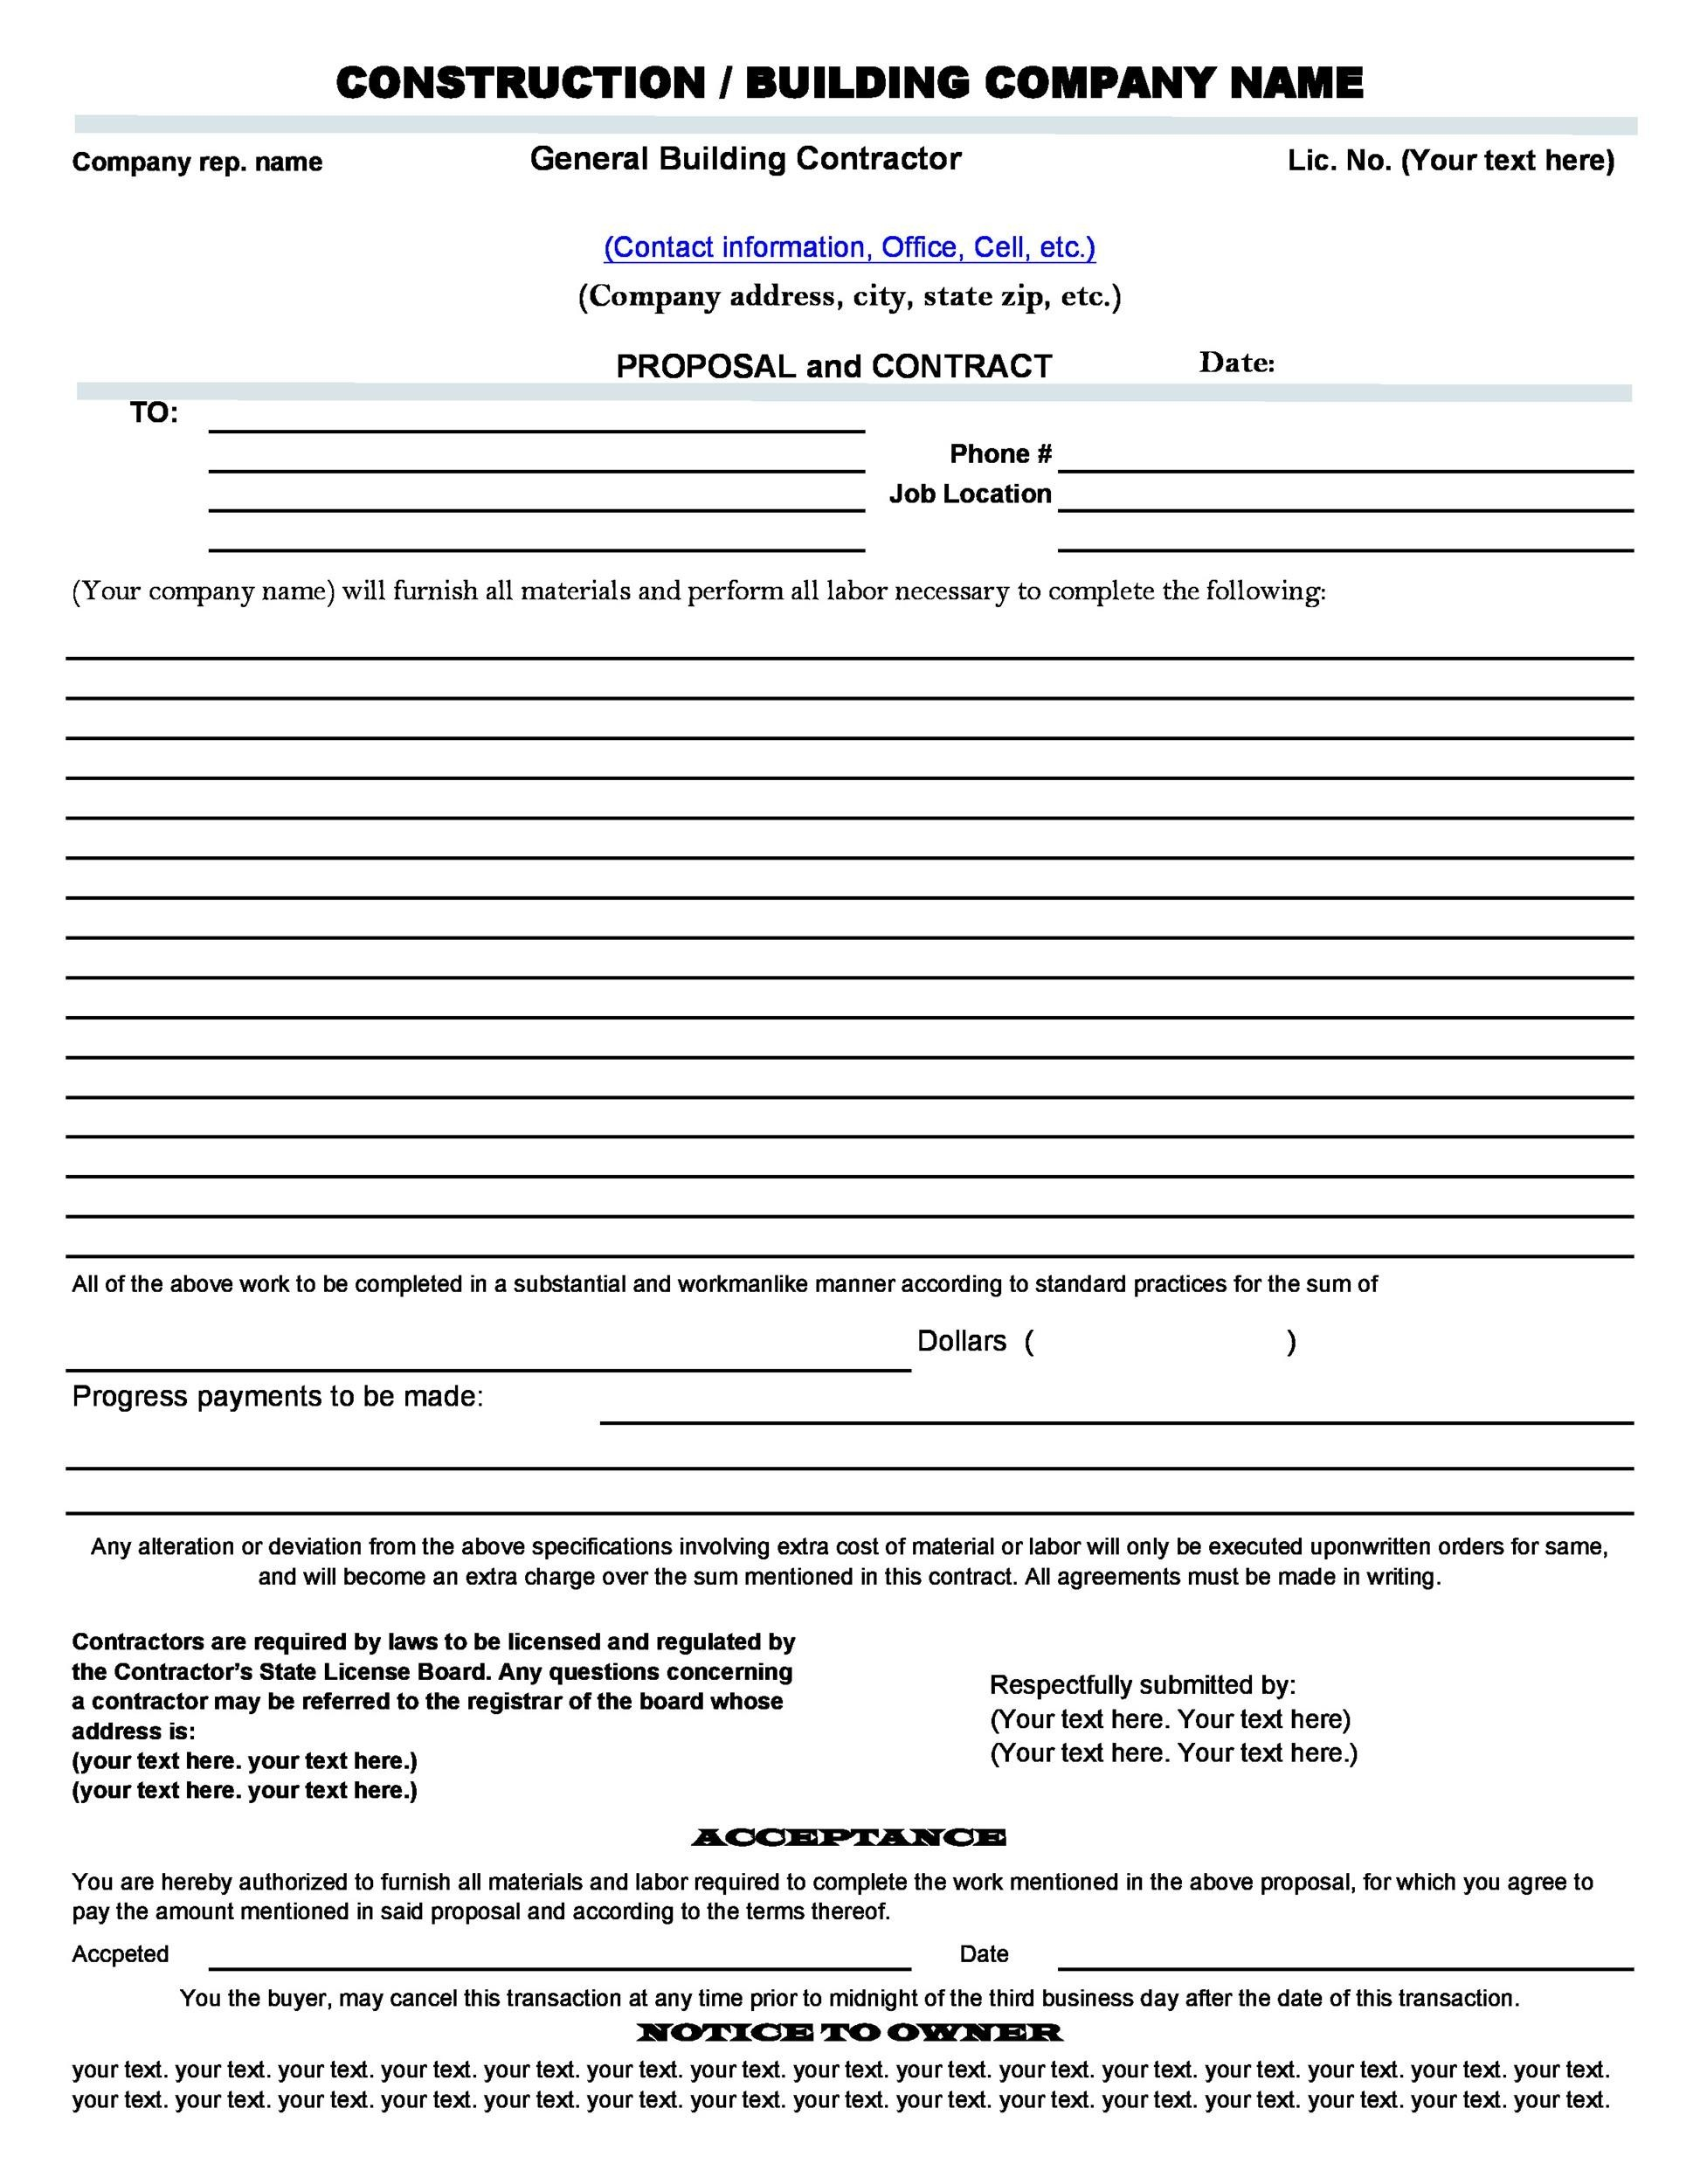 Construction Proposal Template  Construction Bid Forms